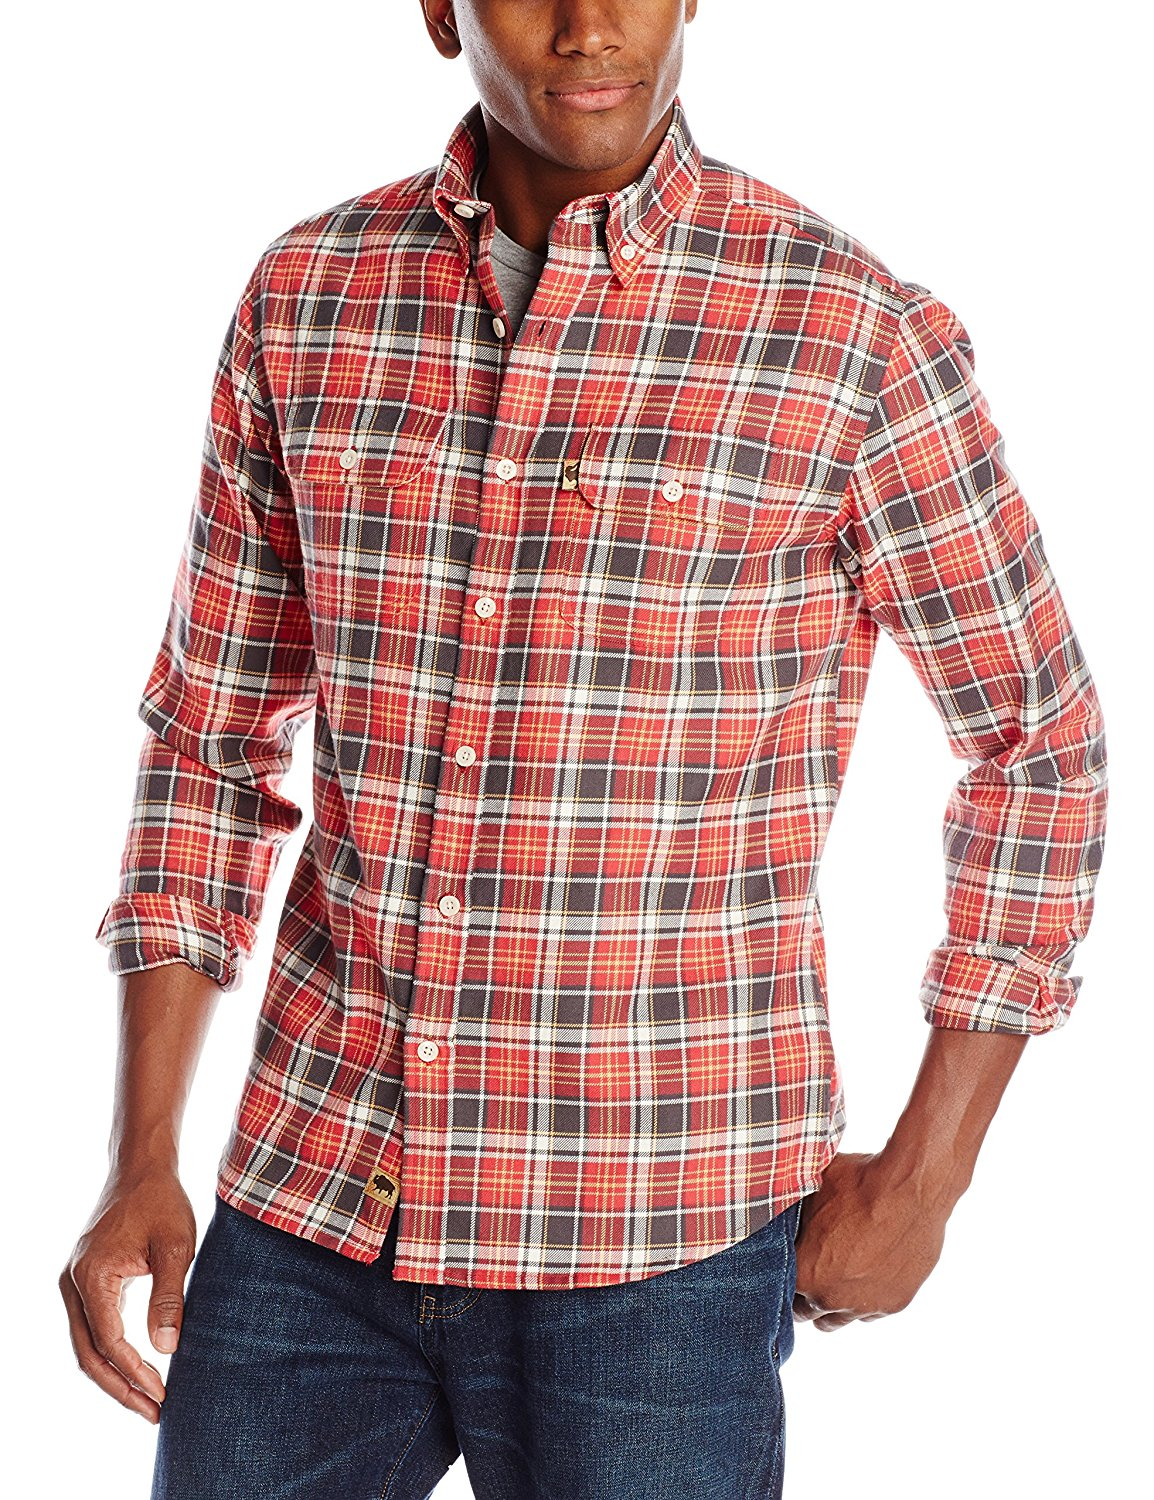 XQS Mens Shirt Checkered with Front Pockets Flannel Hoodie Plaid Long Sleeve